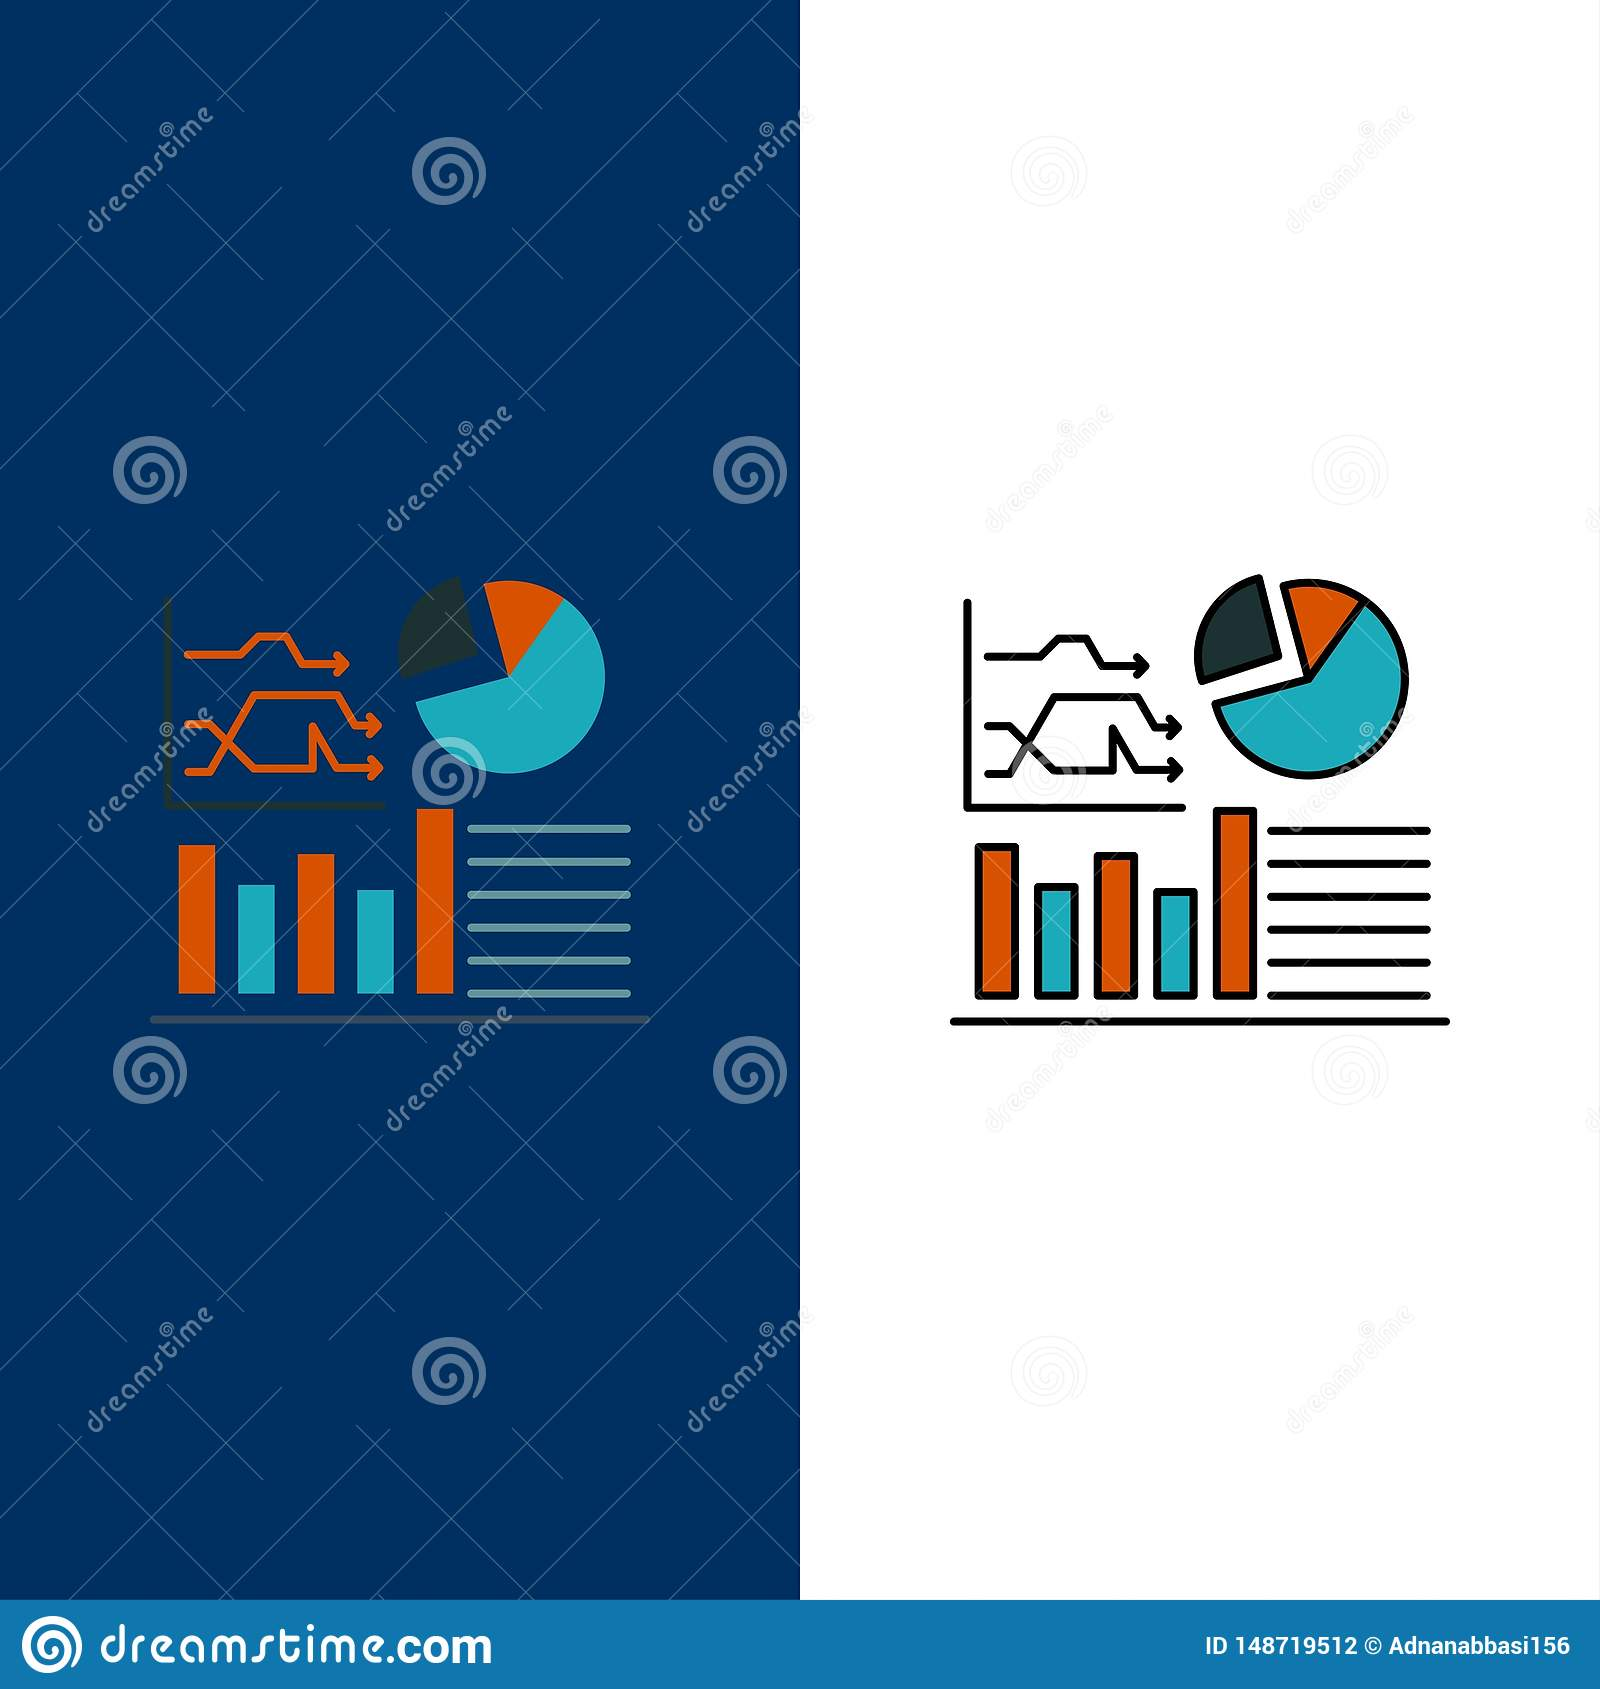 Graph, Success, Flowchart, Business Icons. Flat and Line Filled Icon Set Vector Blue Background